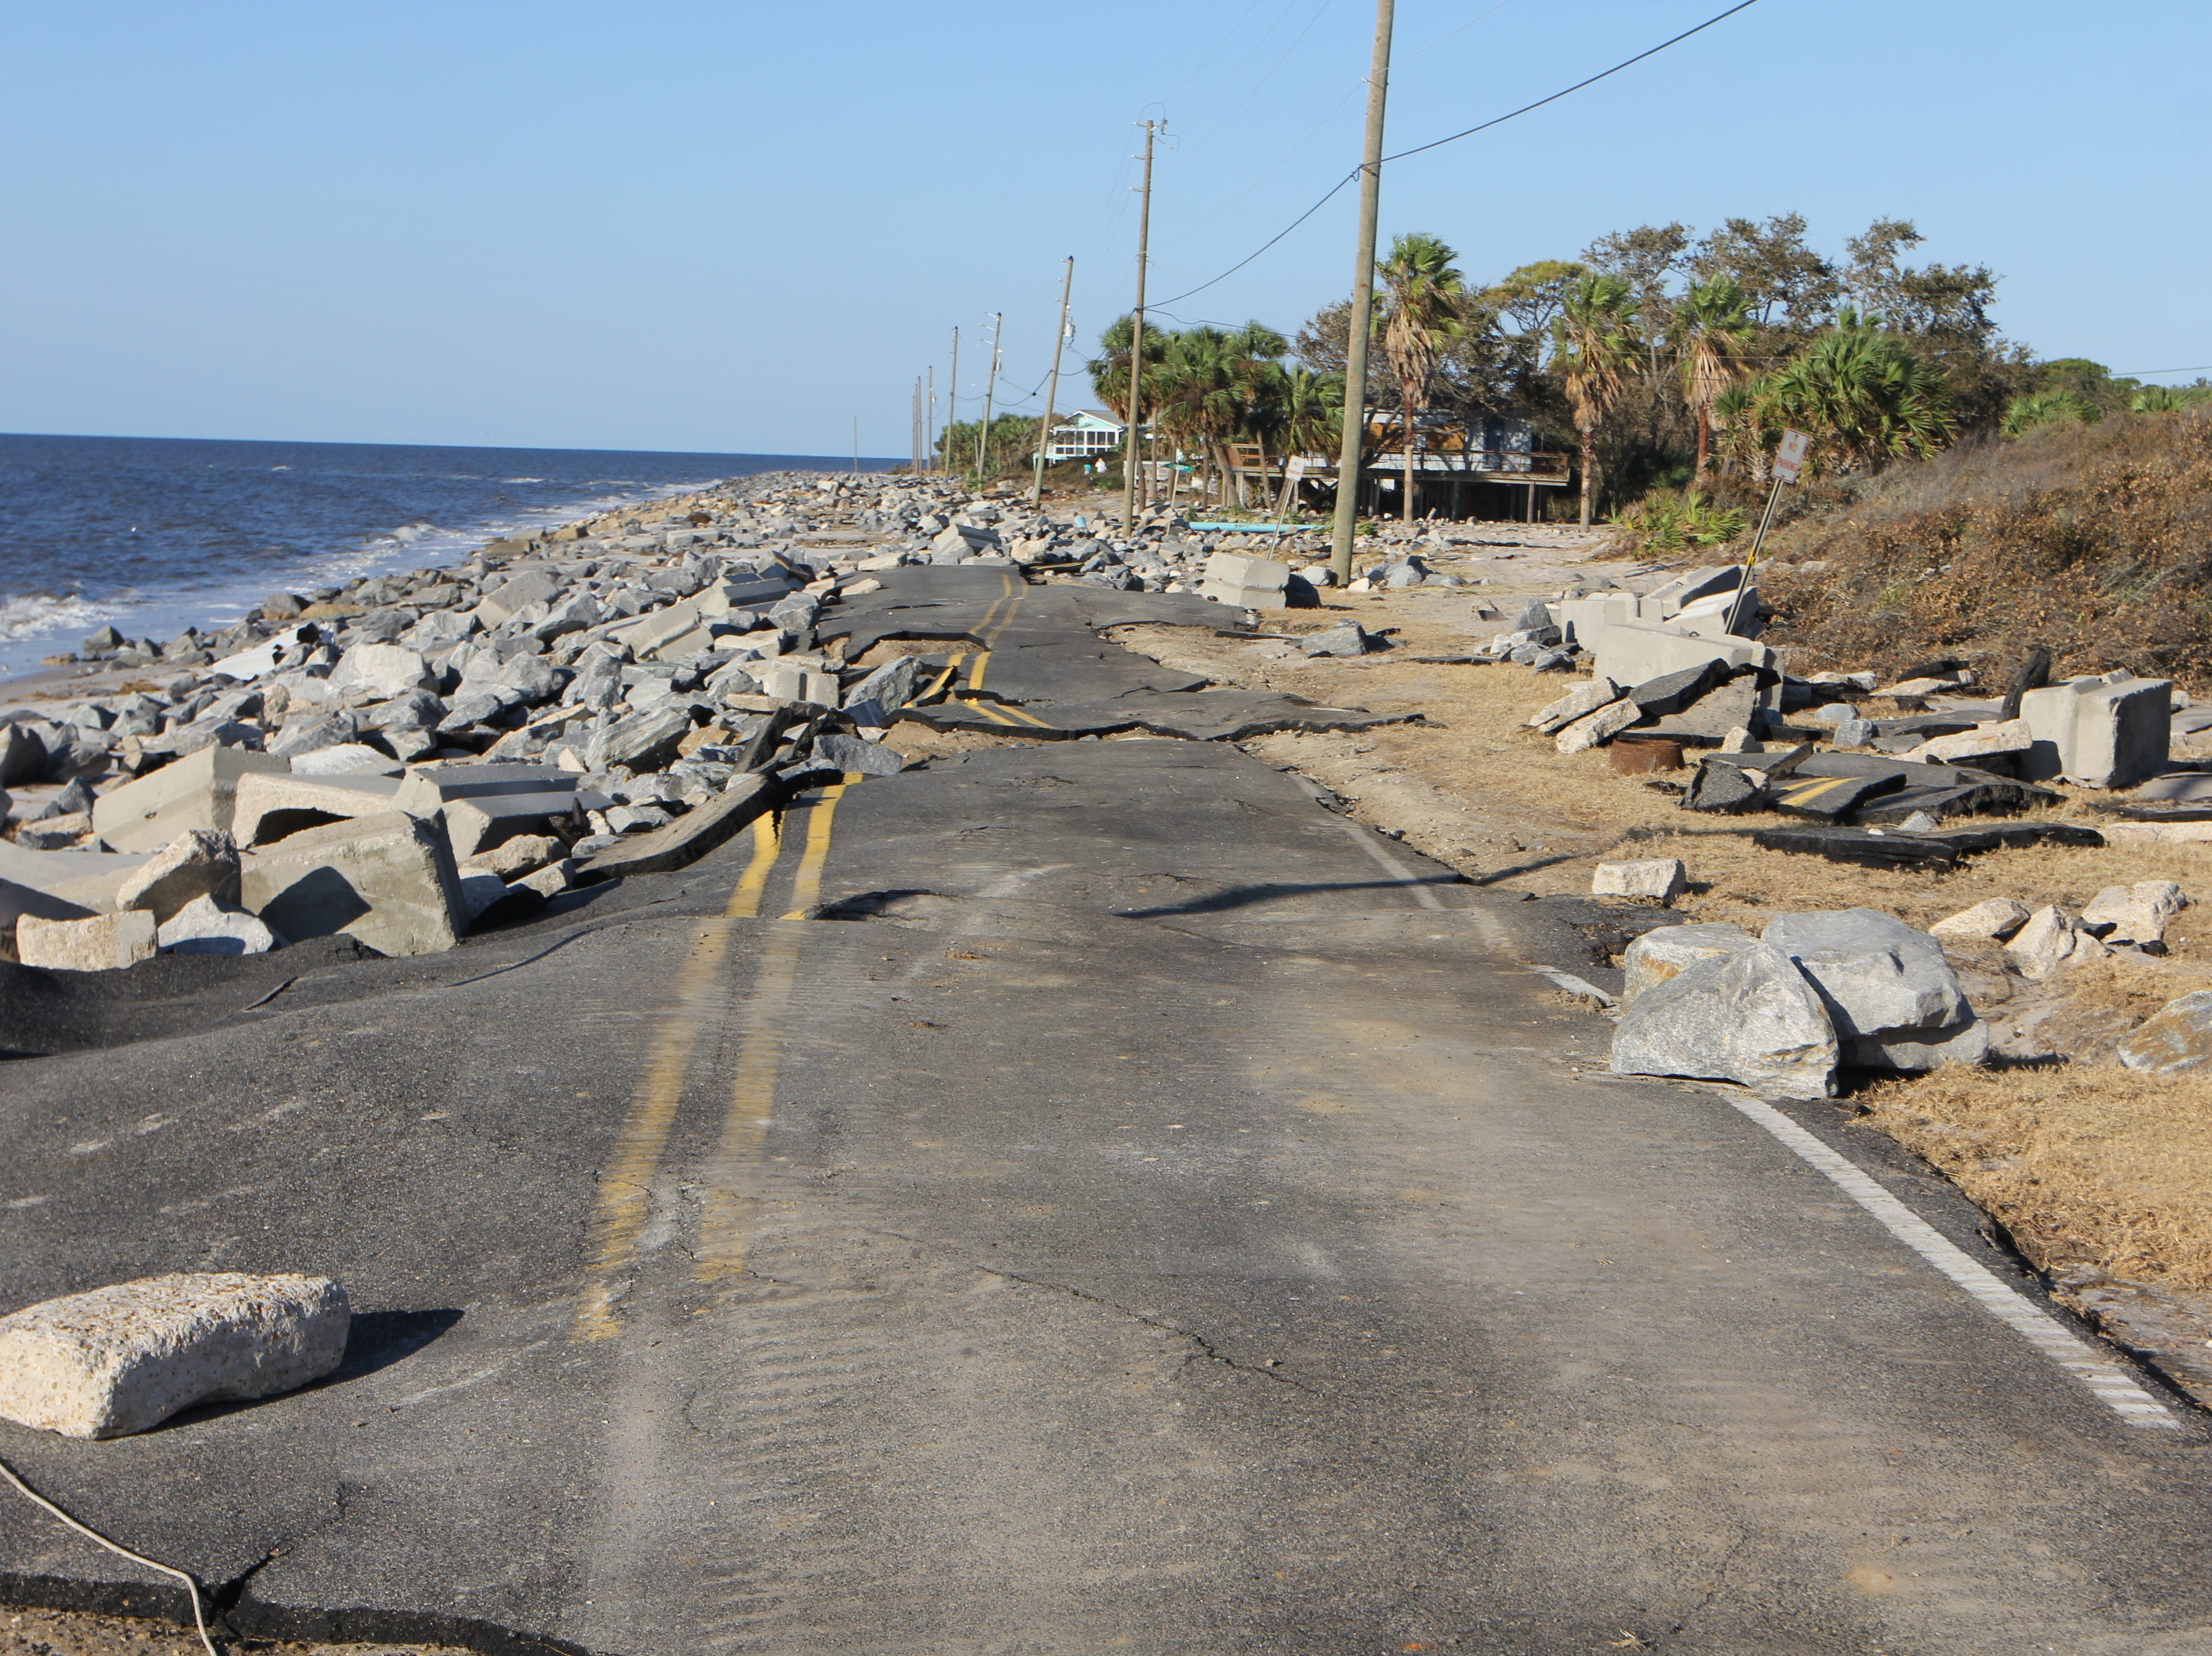 Debris litters the washed out main road to Alligator Point after Hurricane Michael.